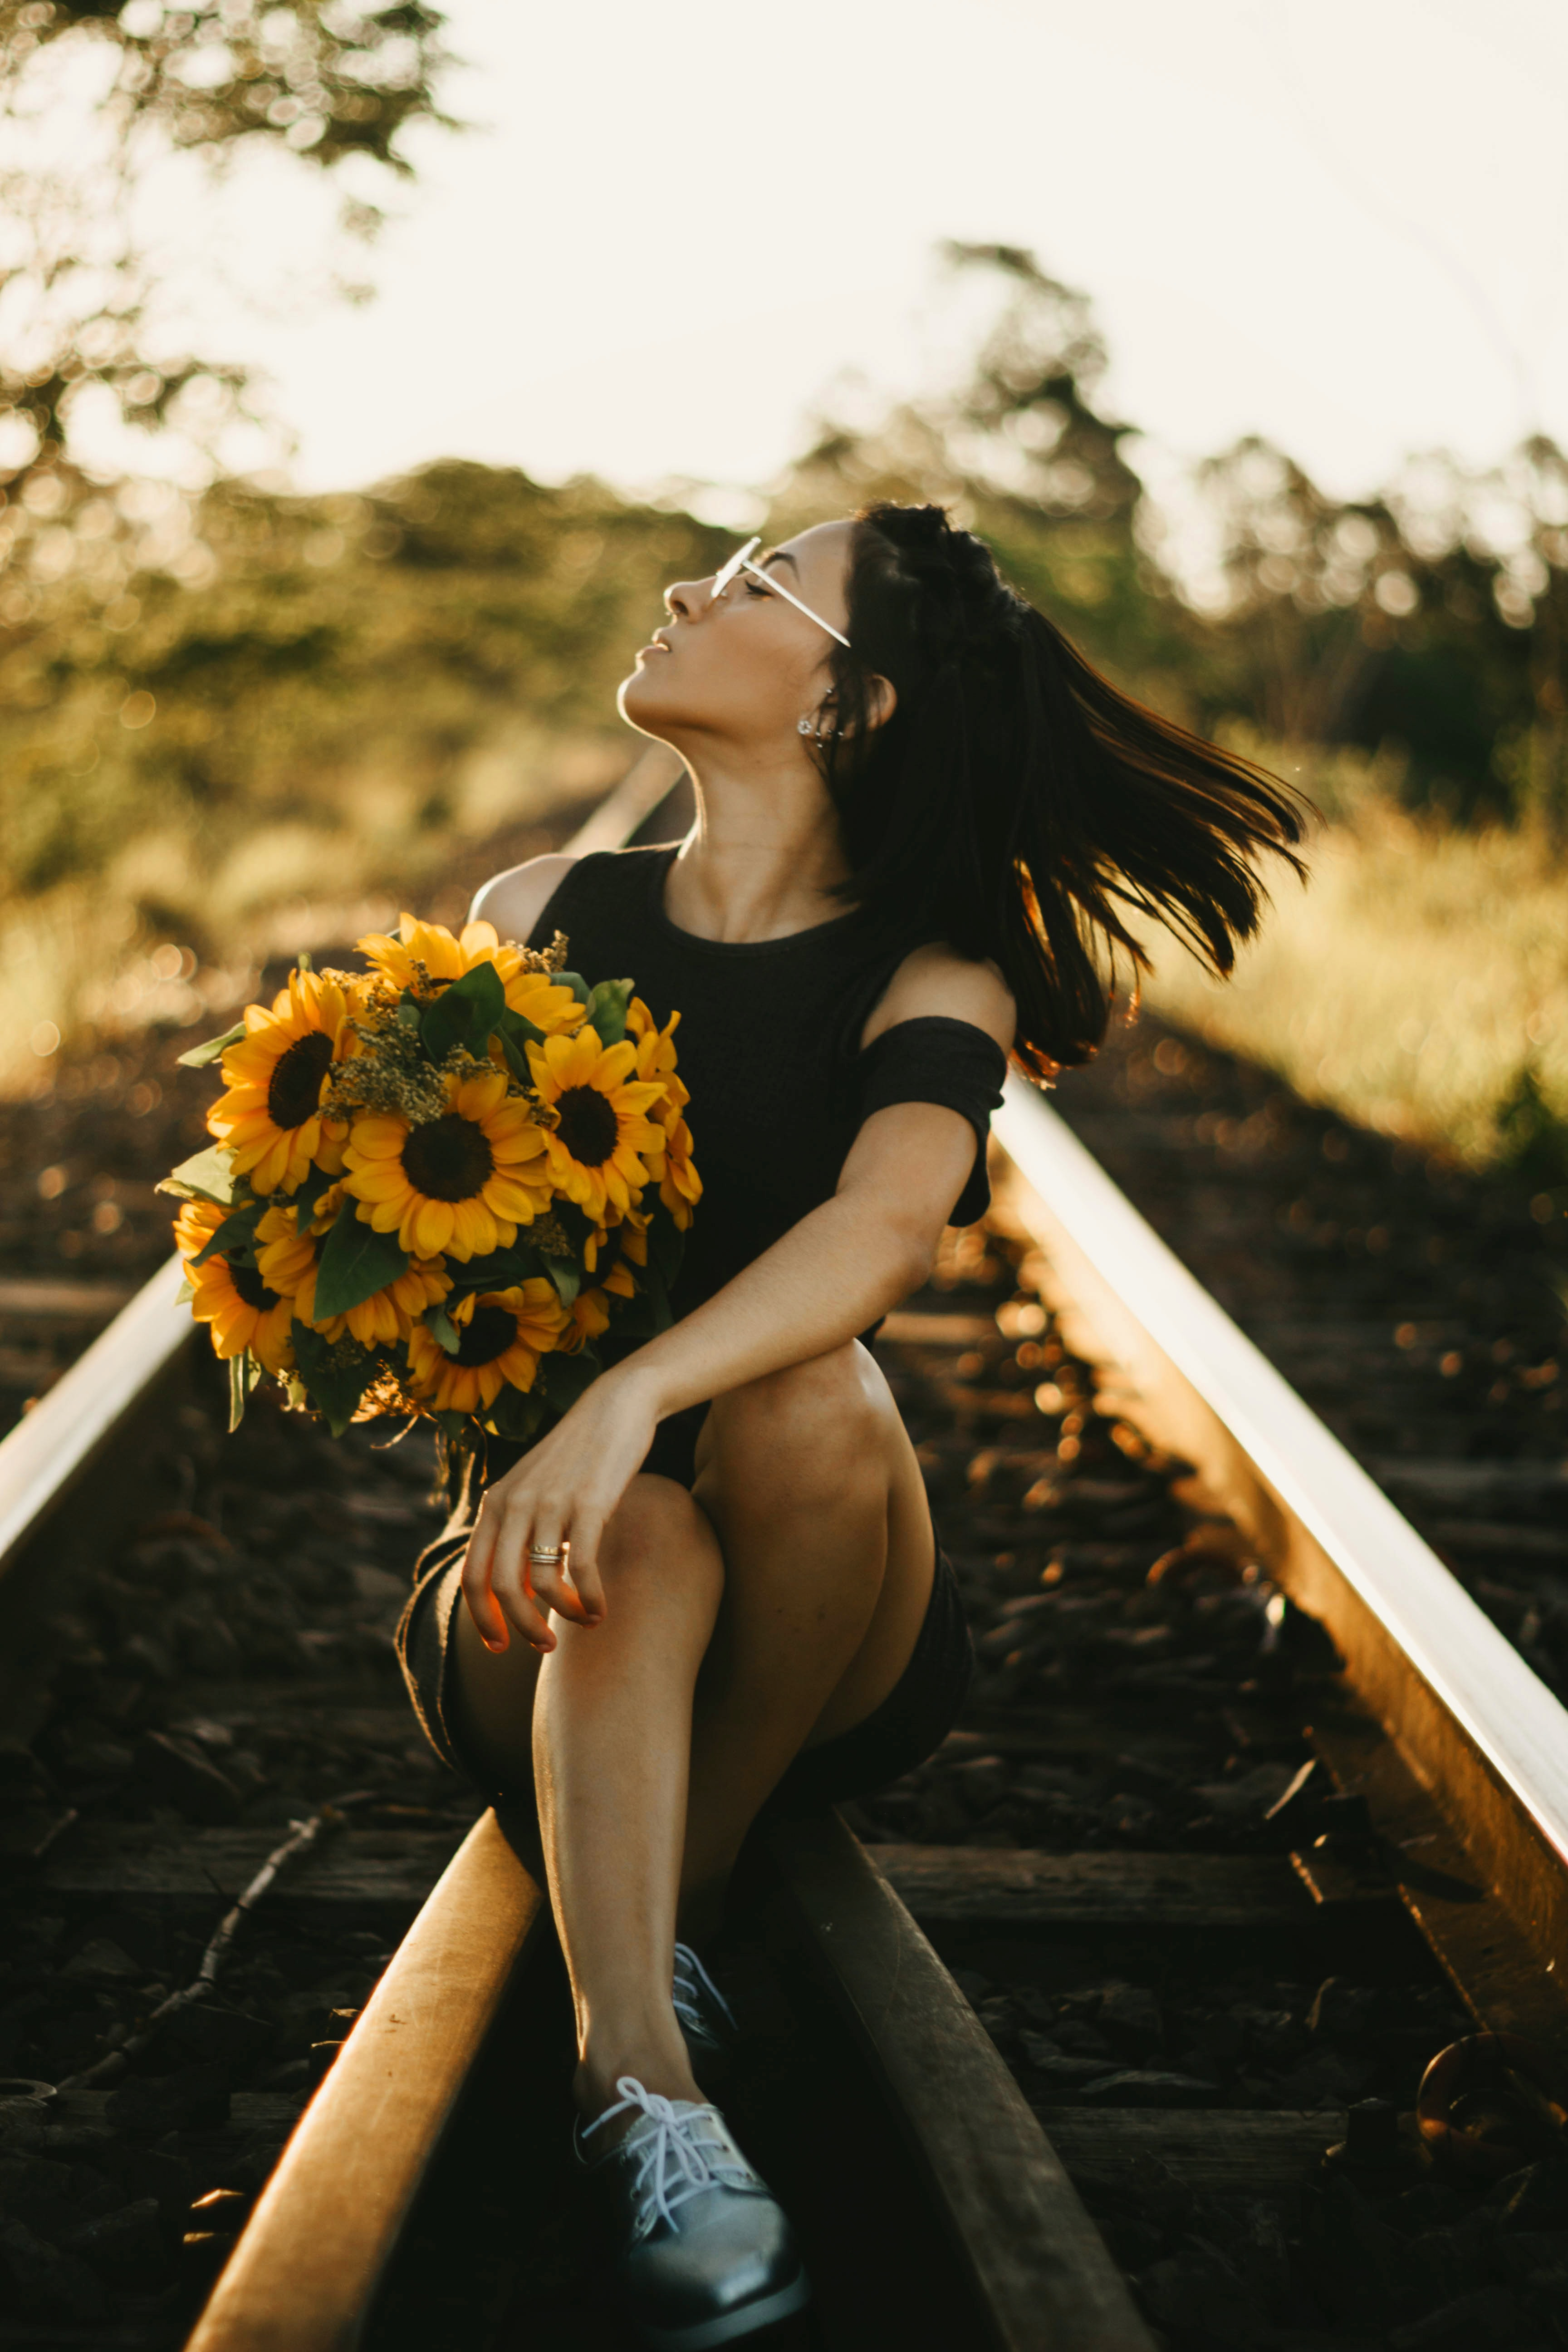 woman sitting on railroad holding bouquet of sunflowers